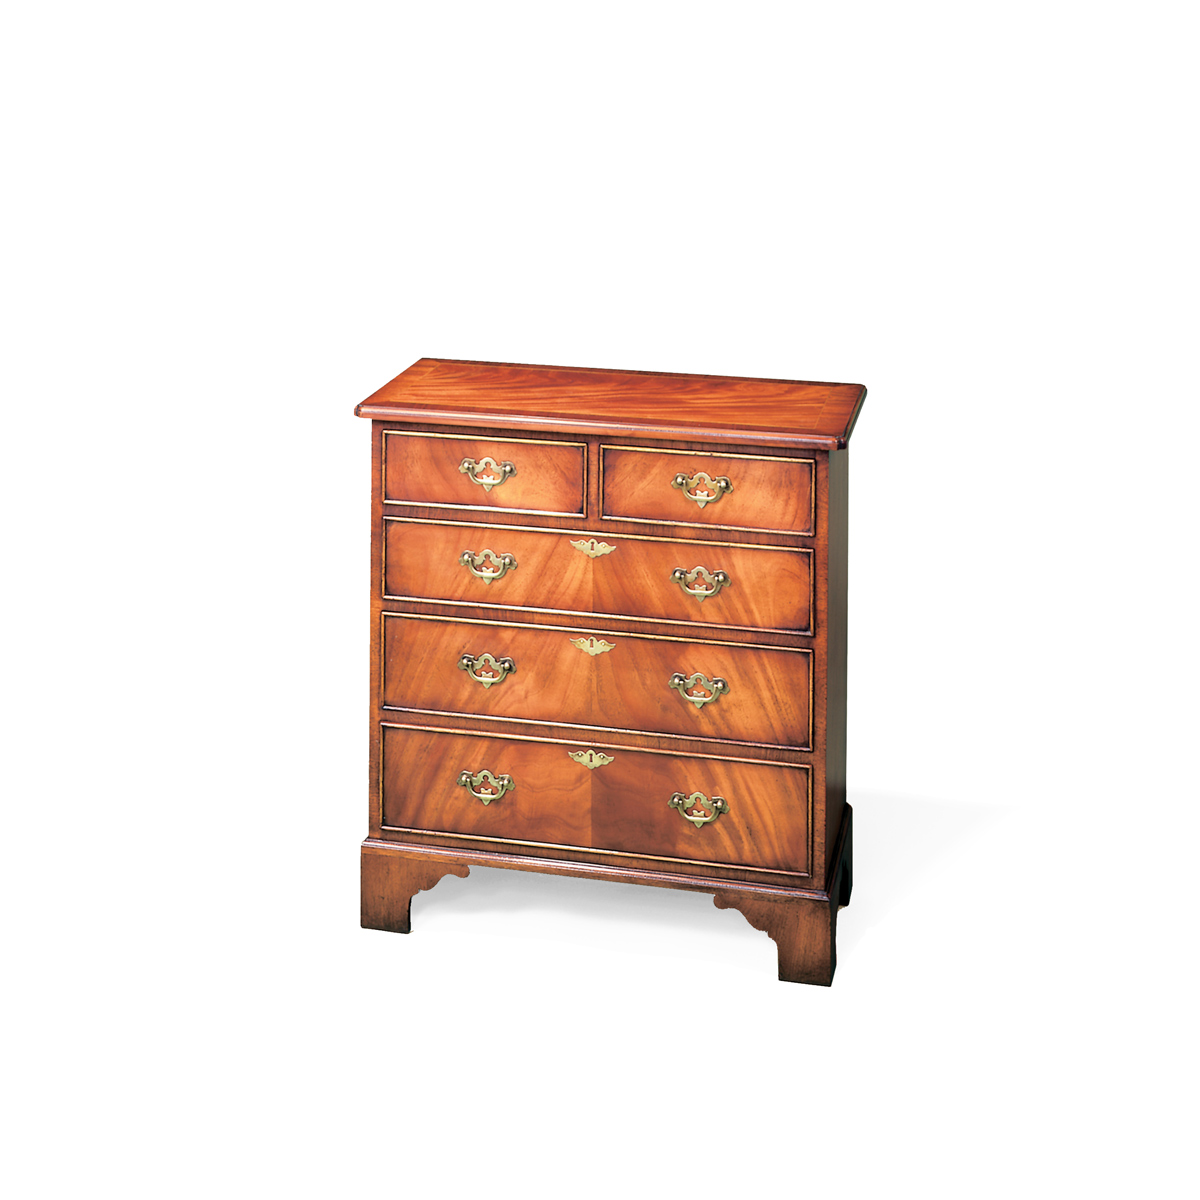 Small-Chest-with-5-Drawers_For-Web.jpg